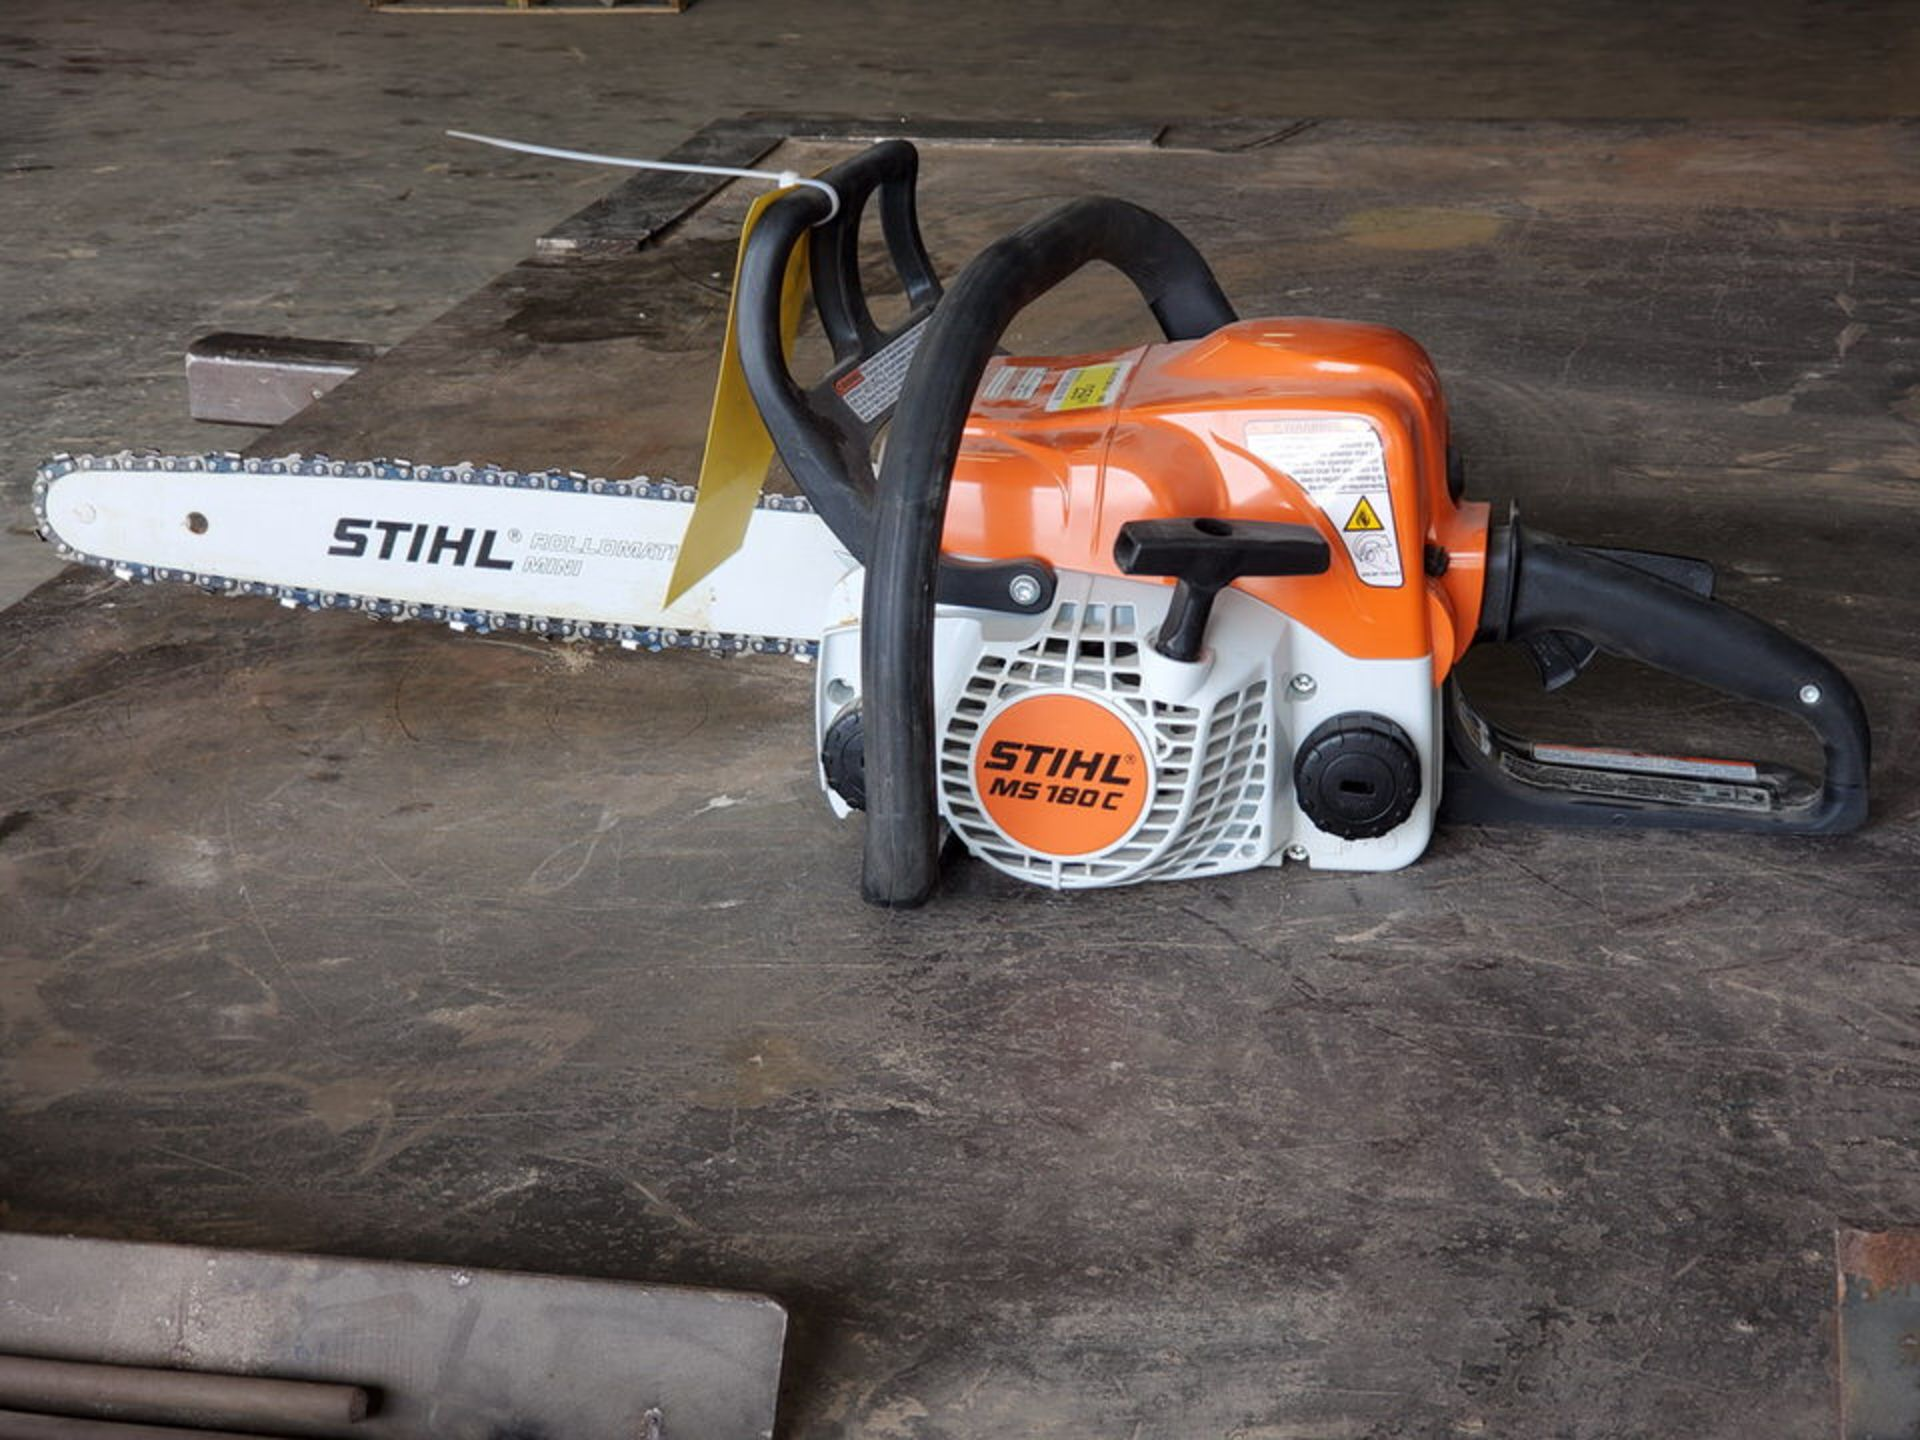 """Stihl 16"""" Gas Powered Chain Saw - Image 4 of 4"""